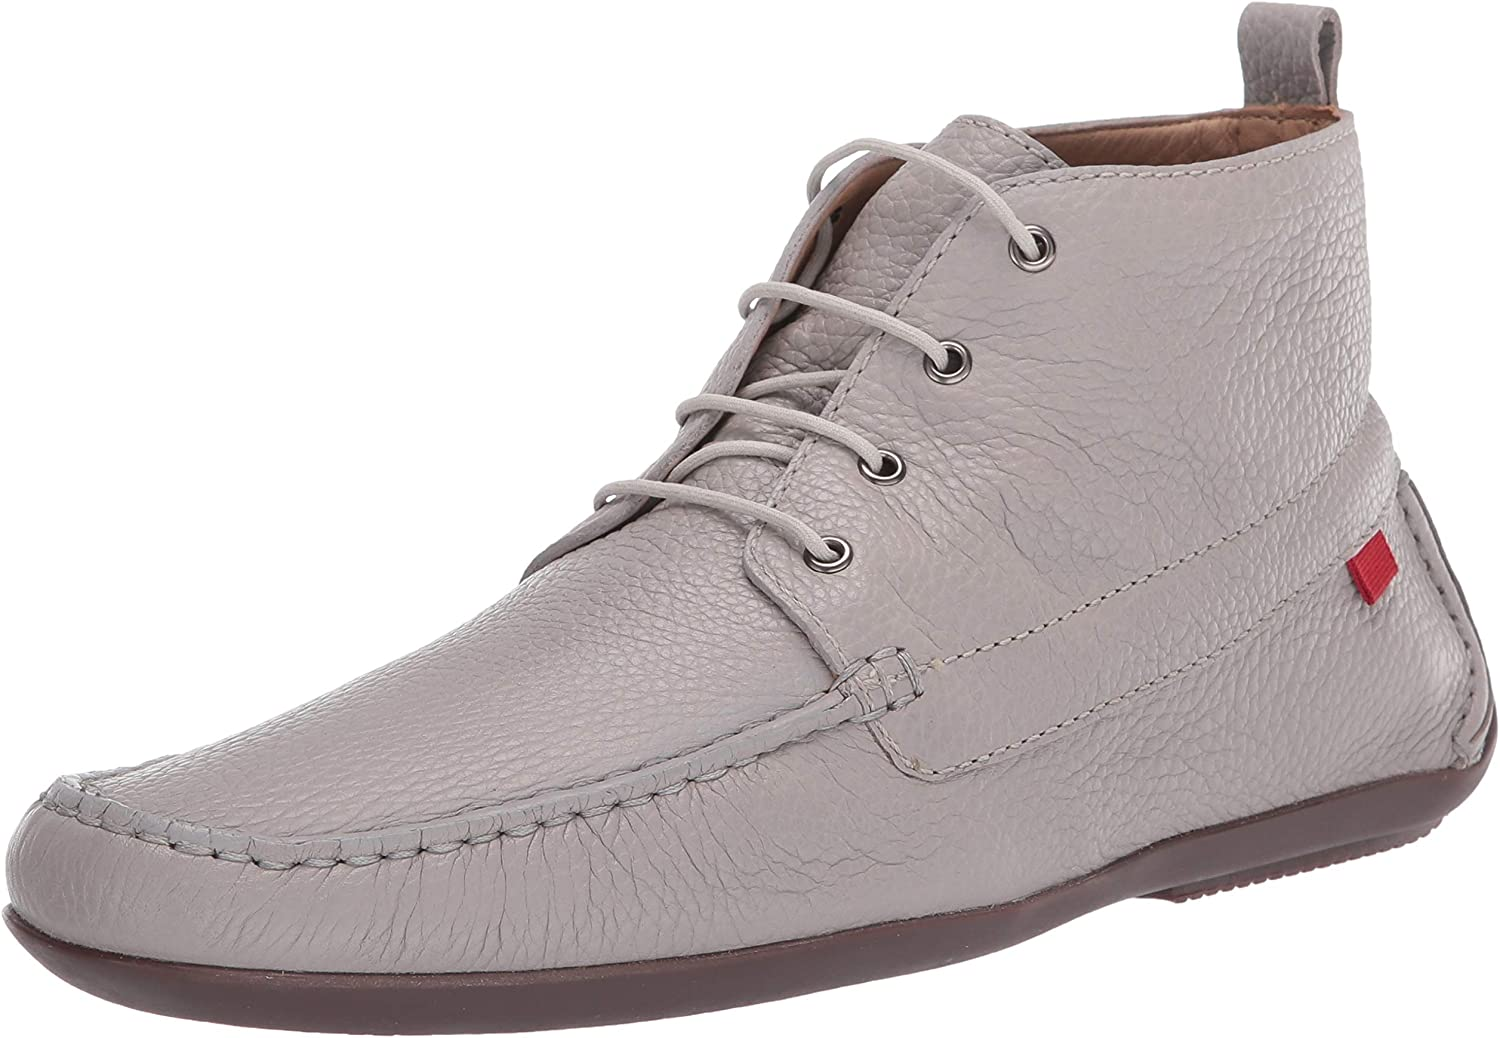 Marc Colorado Springs Mall Joseph New York Men's Leather Luxury Style In a popularity Bo Driving Ankle